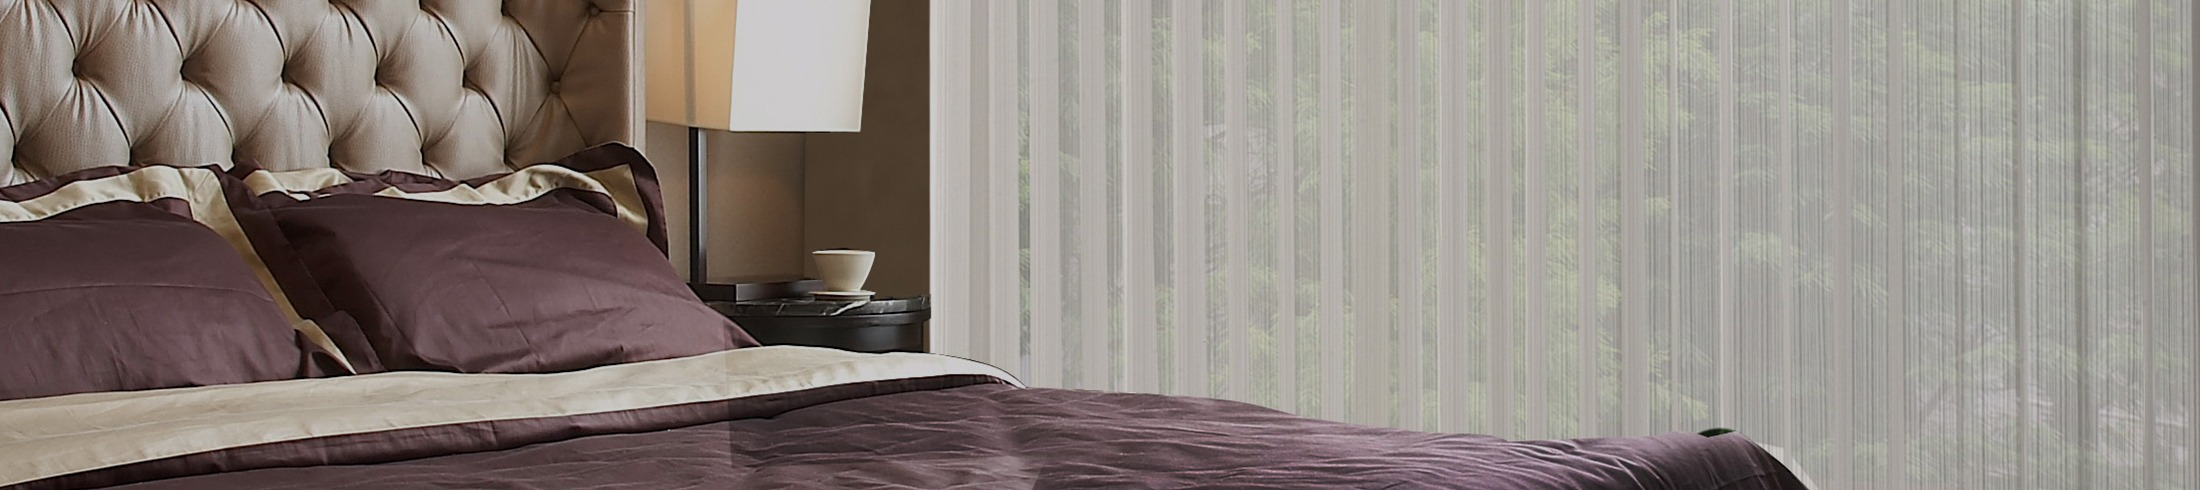 indoor wfold drapes 01